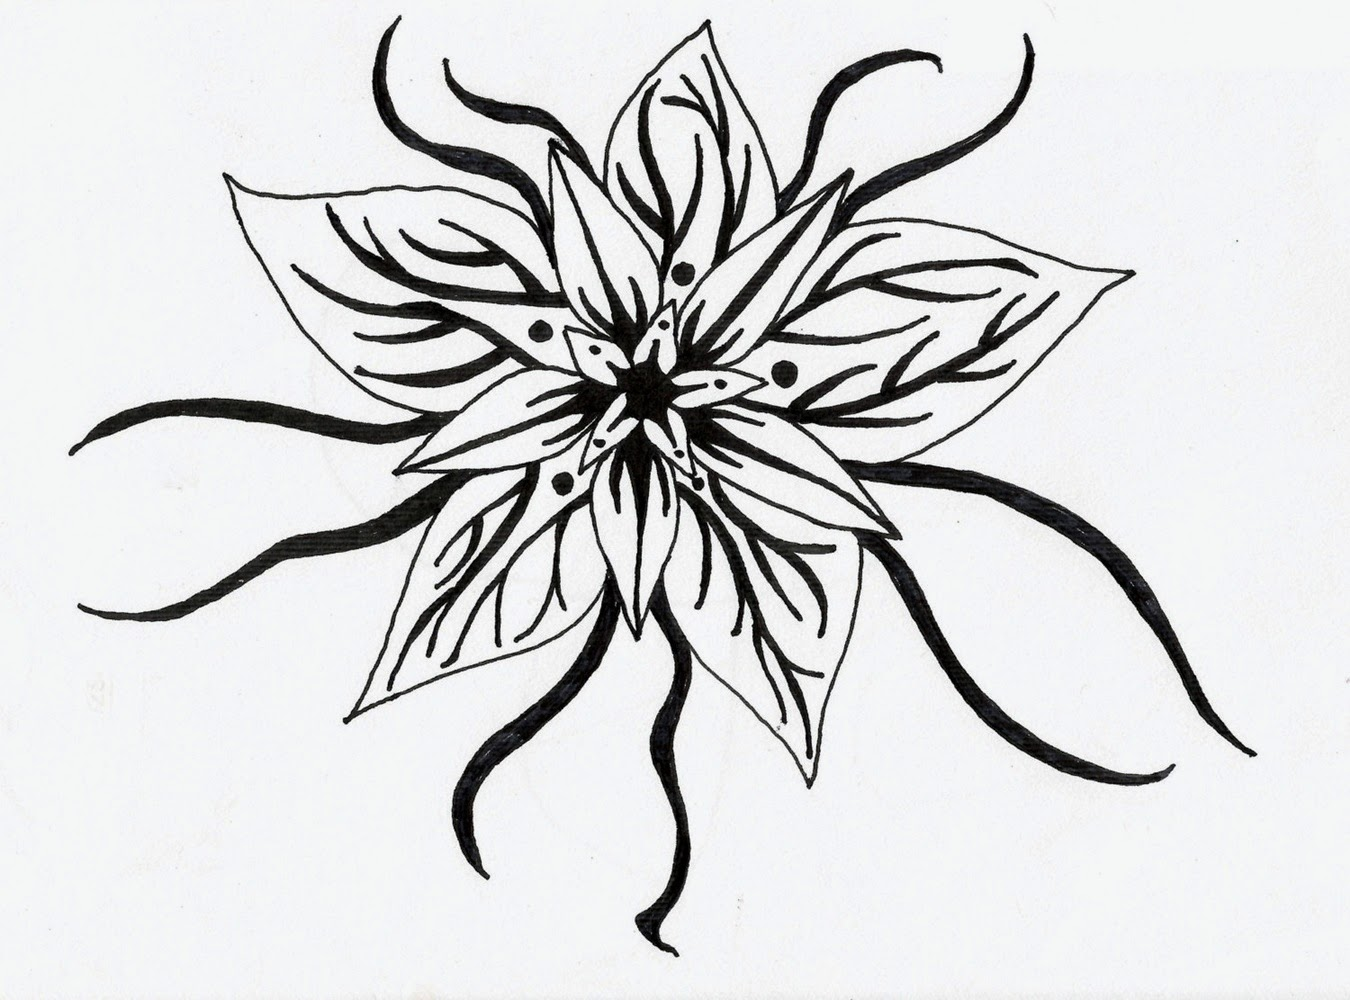 1350x1000 Black And White Flower Design Many Flowers